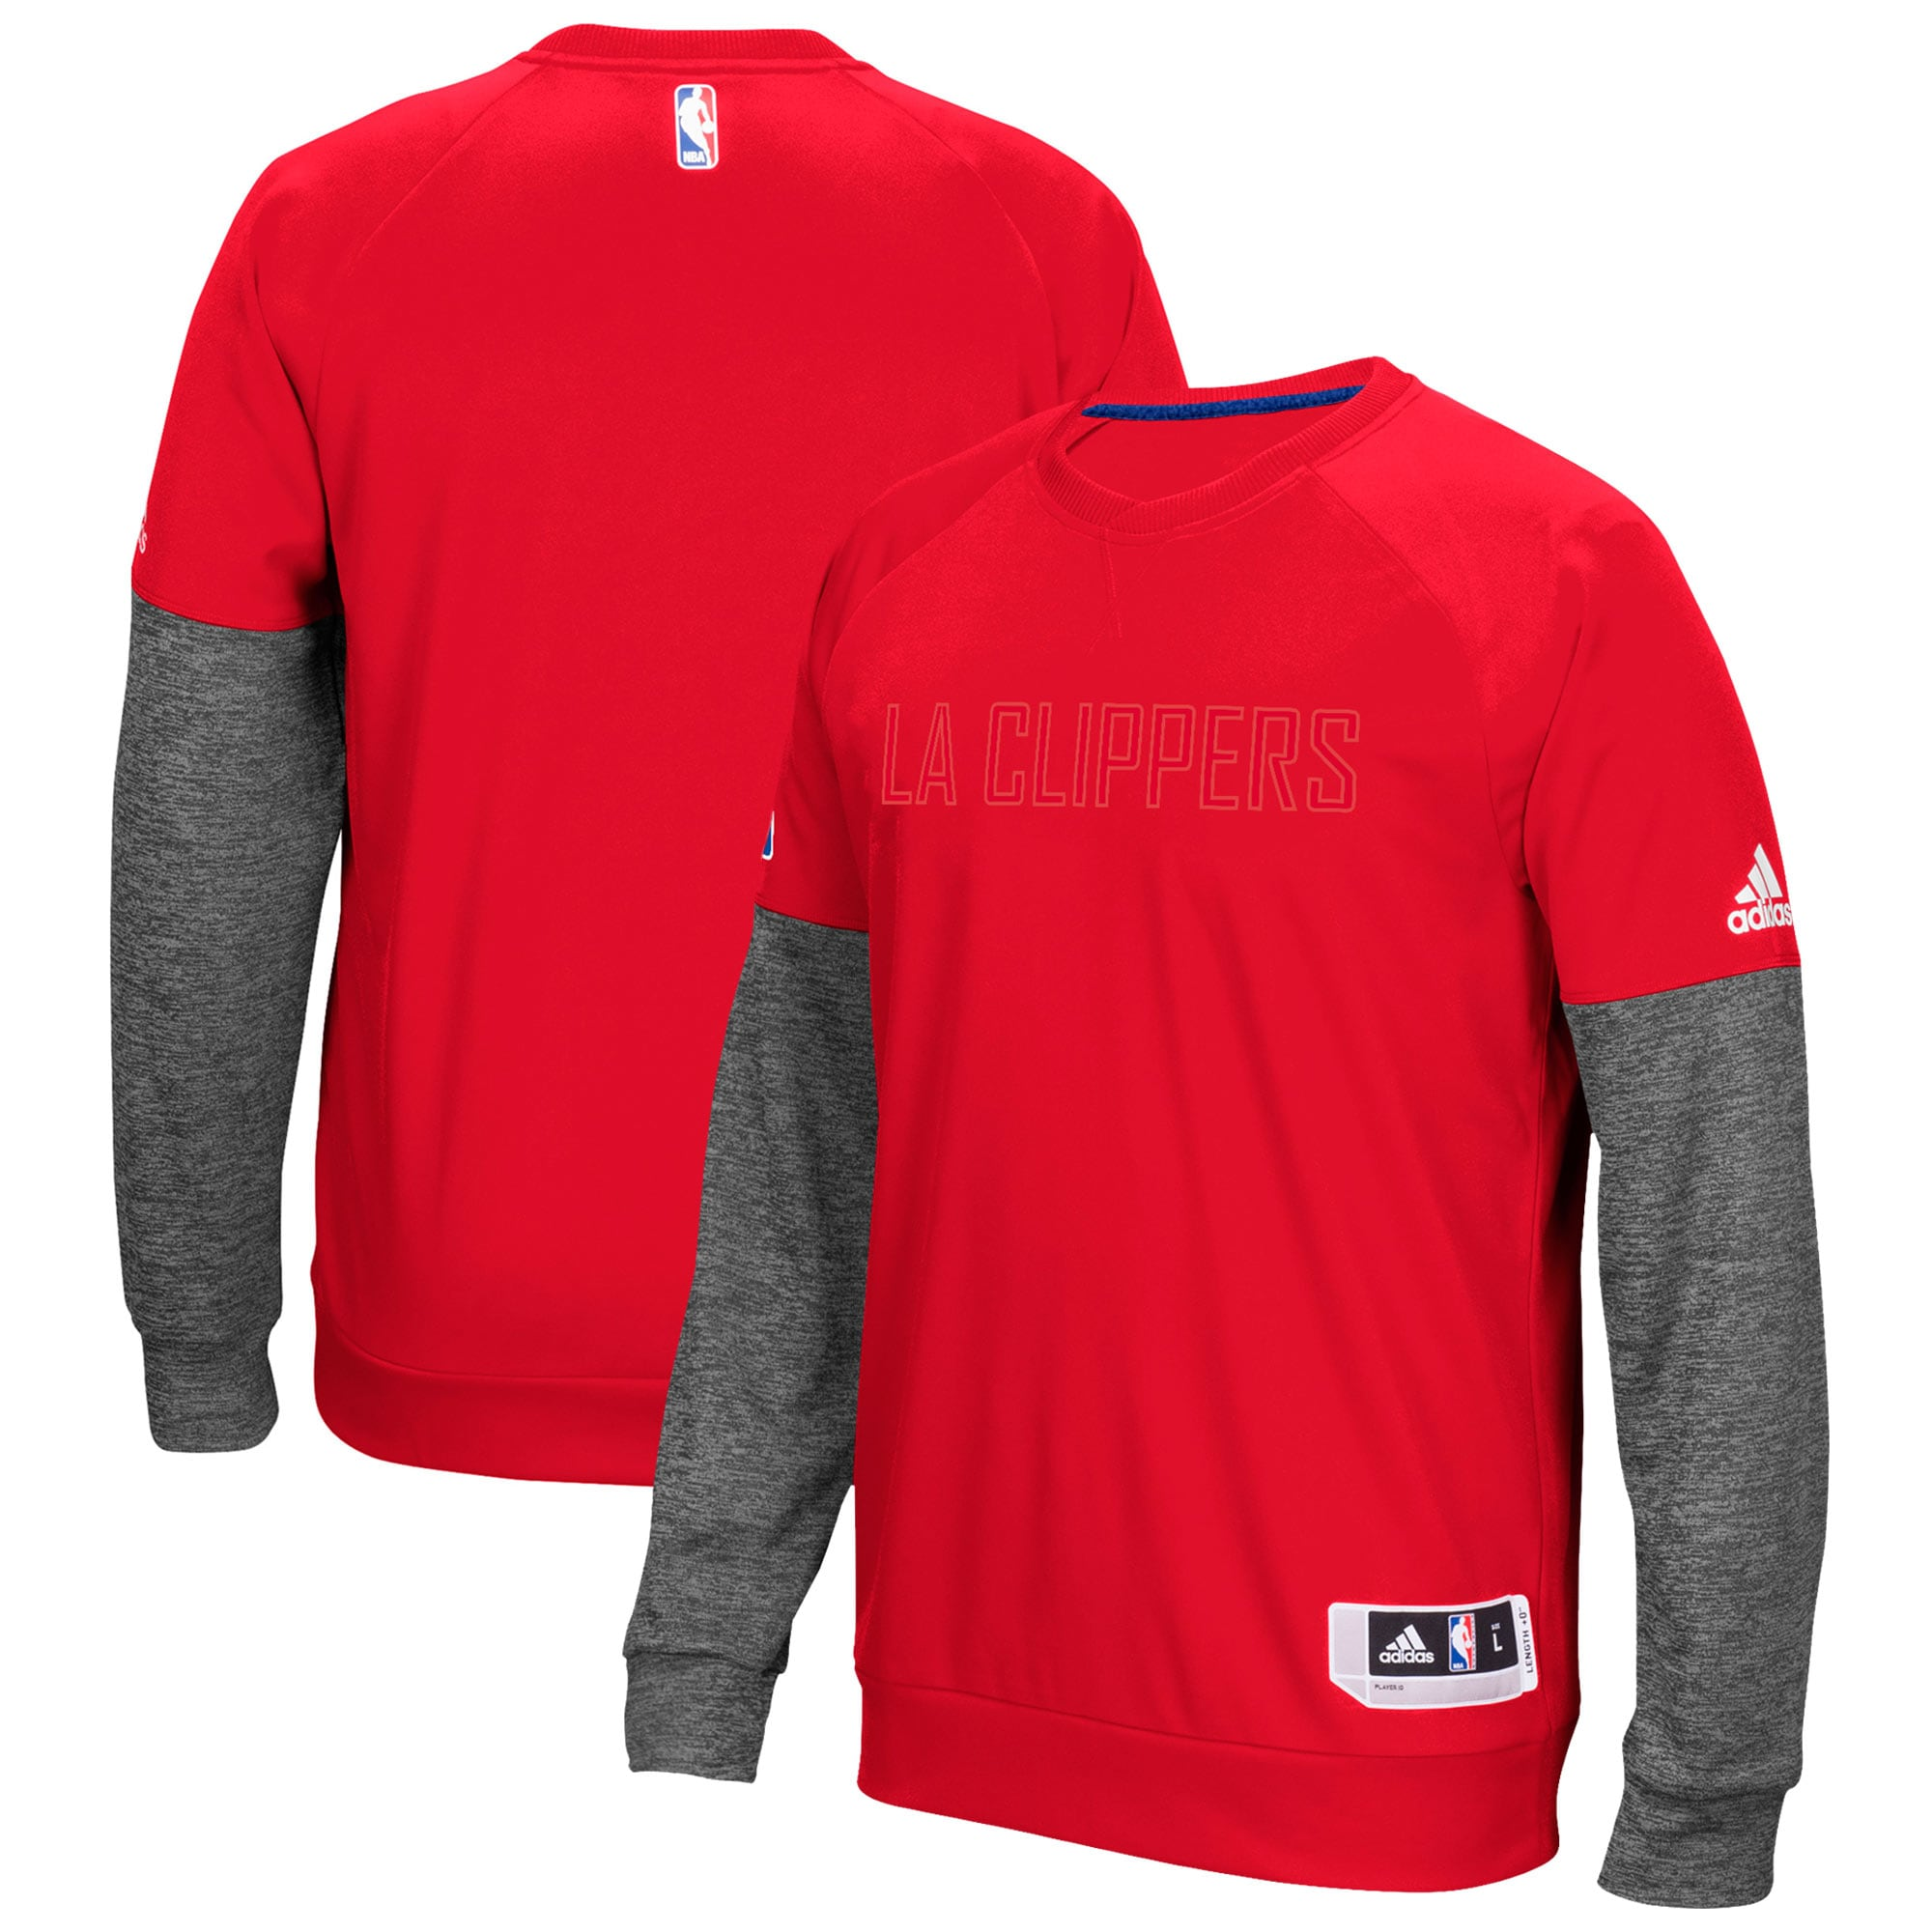 LA Clippers adidas 2016 Christmas Day Second Half Pullover Sweatshirt - Red